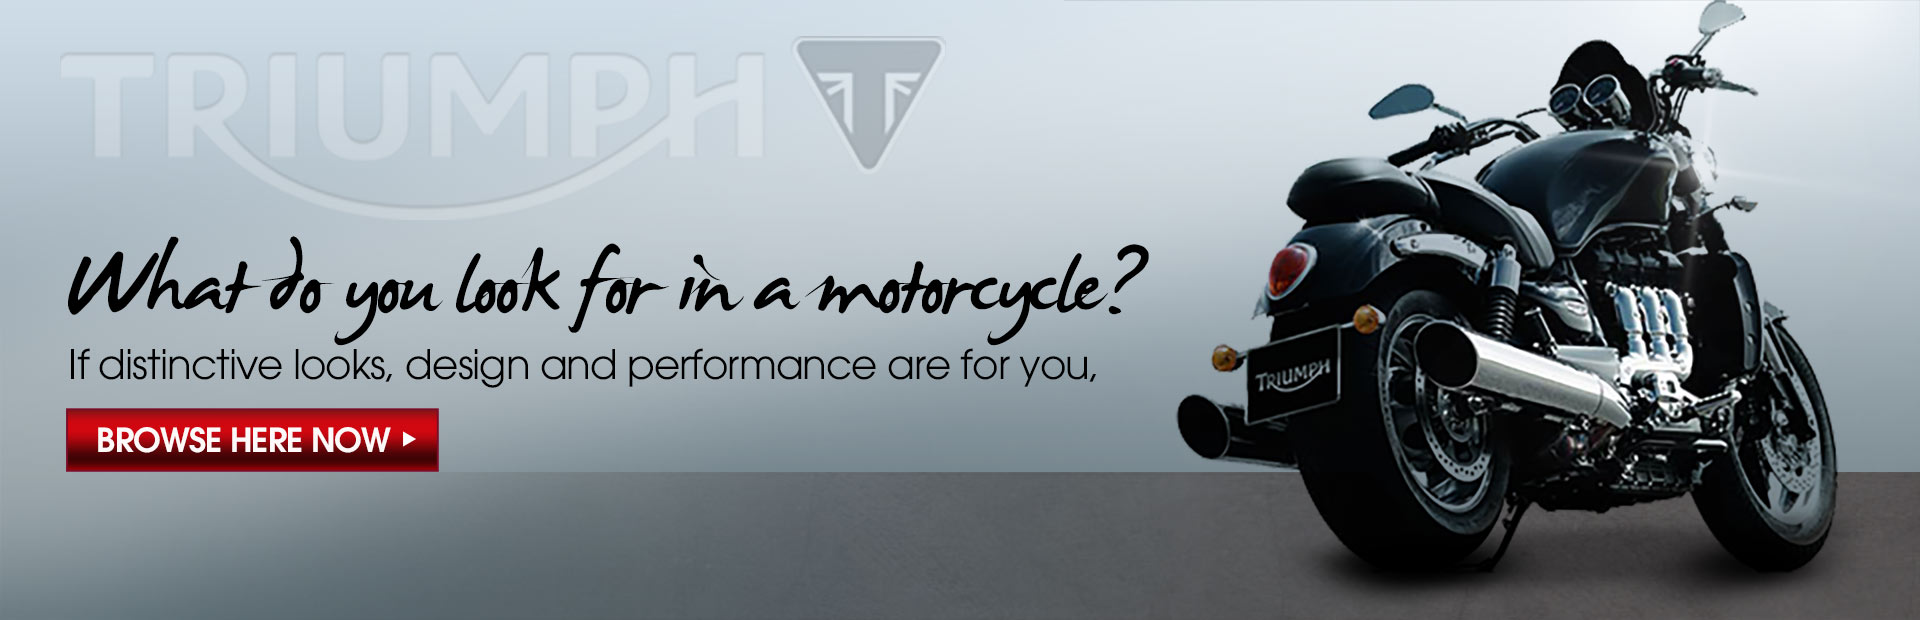 What do you look for in a motorcycle? If distinctive looks, design, and performance are for you, browse Triumph motorcycles now.